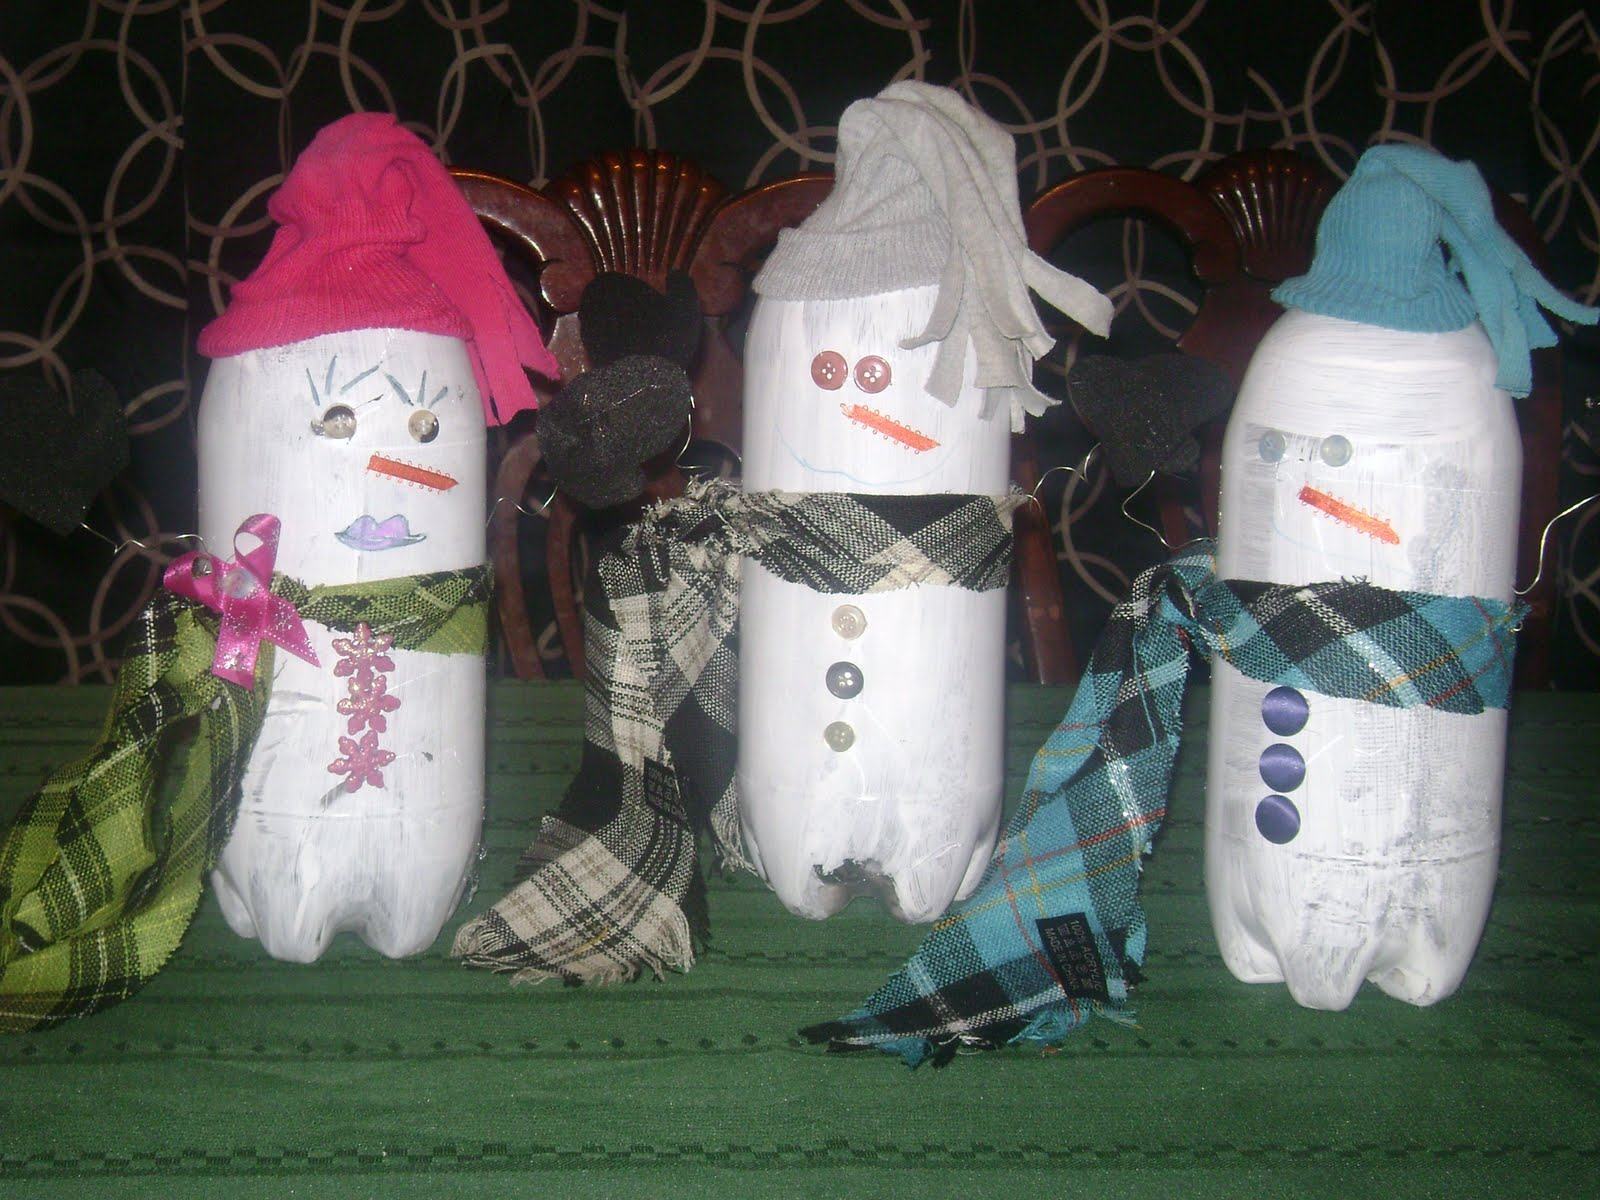 ... AND THEN SOME...: One second 2 liter bottles.. the next SNOWMEN